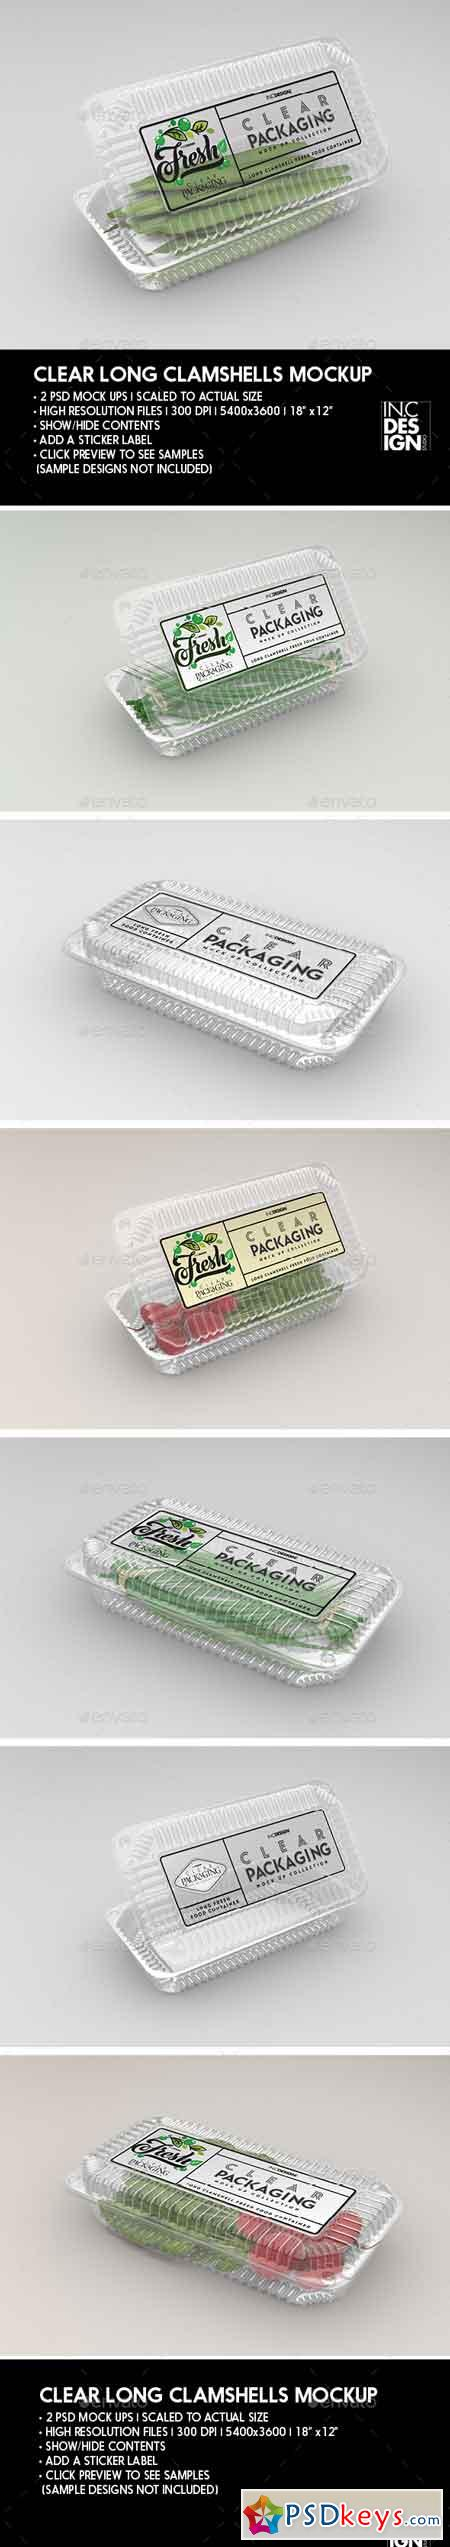 Clear Long Clamshell Packaging Mockup 22071931